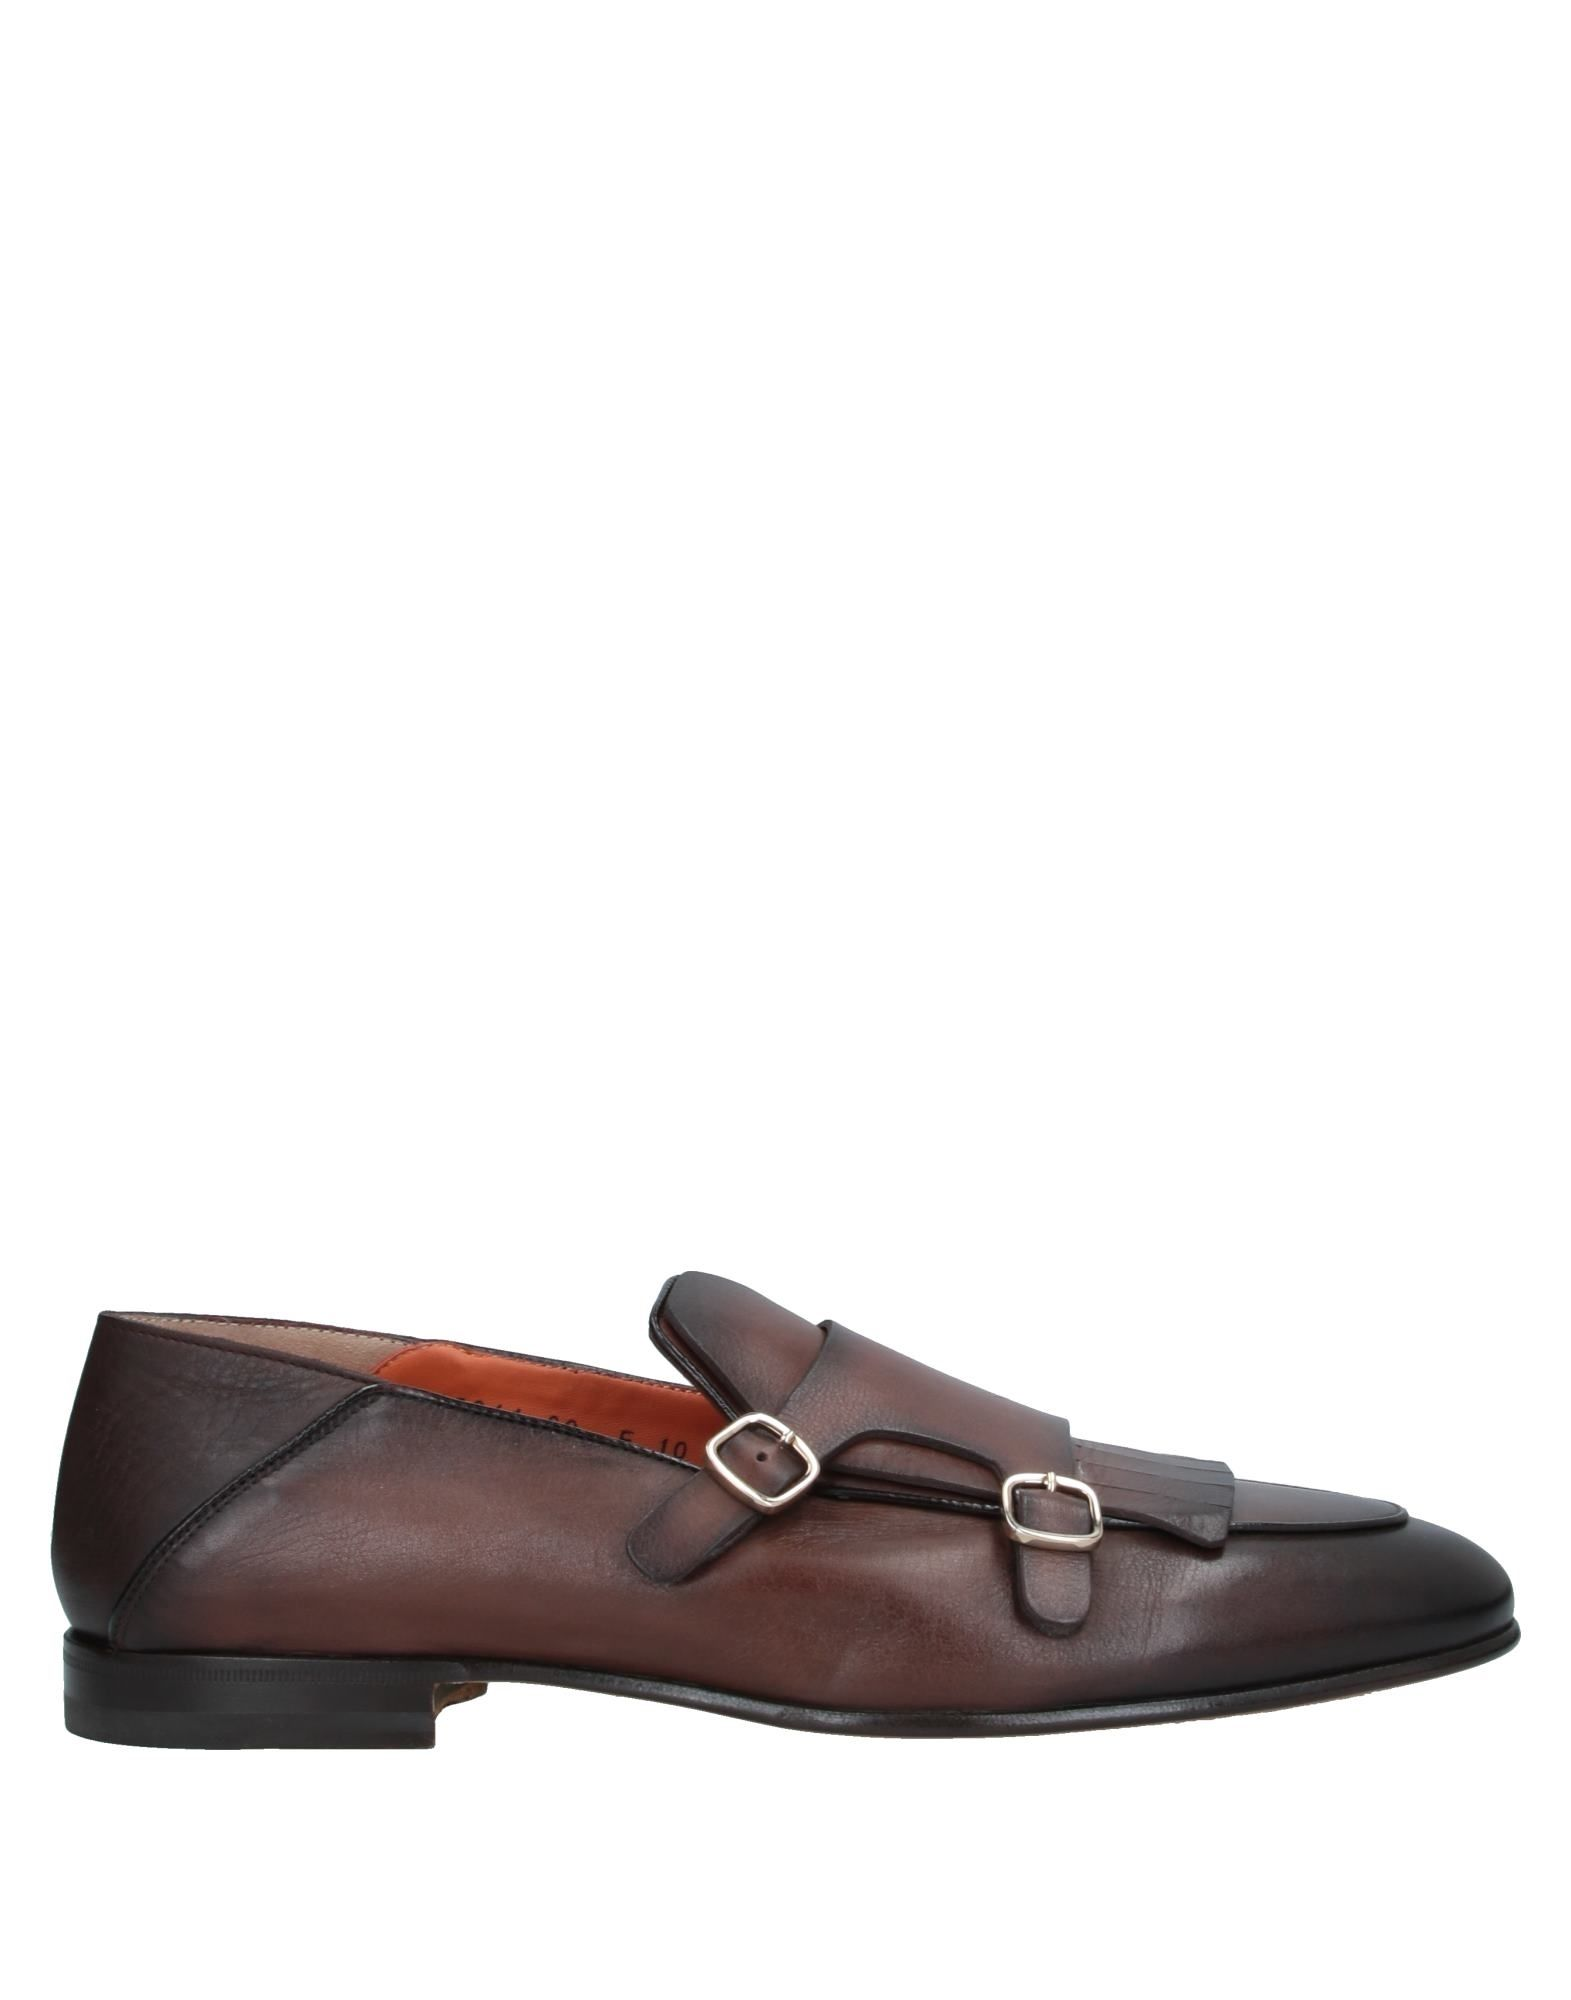 SANTONI Loafers. fringe, solid color, buckle, round toeline, flat, leather lining, leather sole, contains non-textile parts of animal origin, monkstrap, large sized. Soft Leather